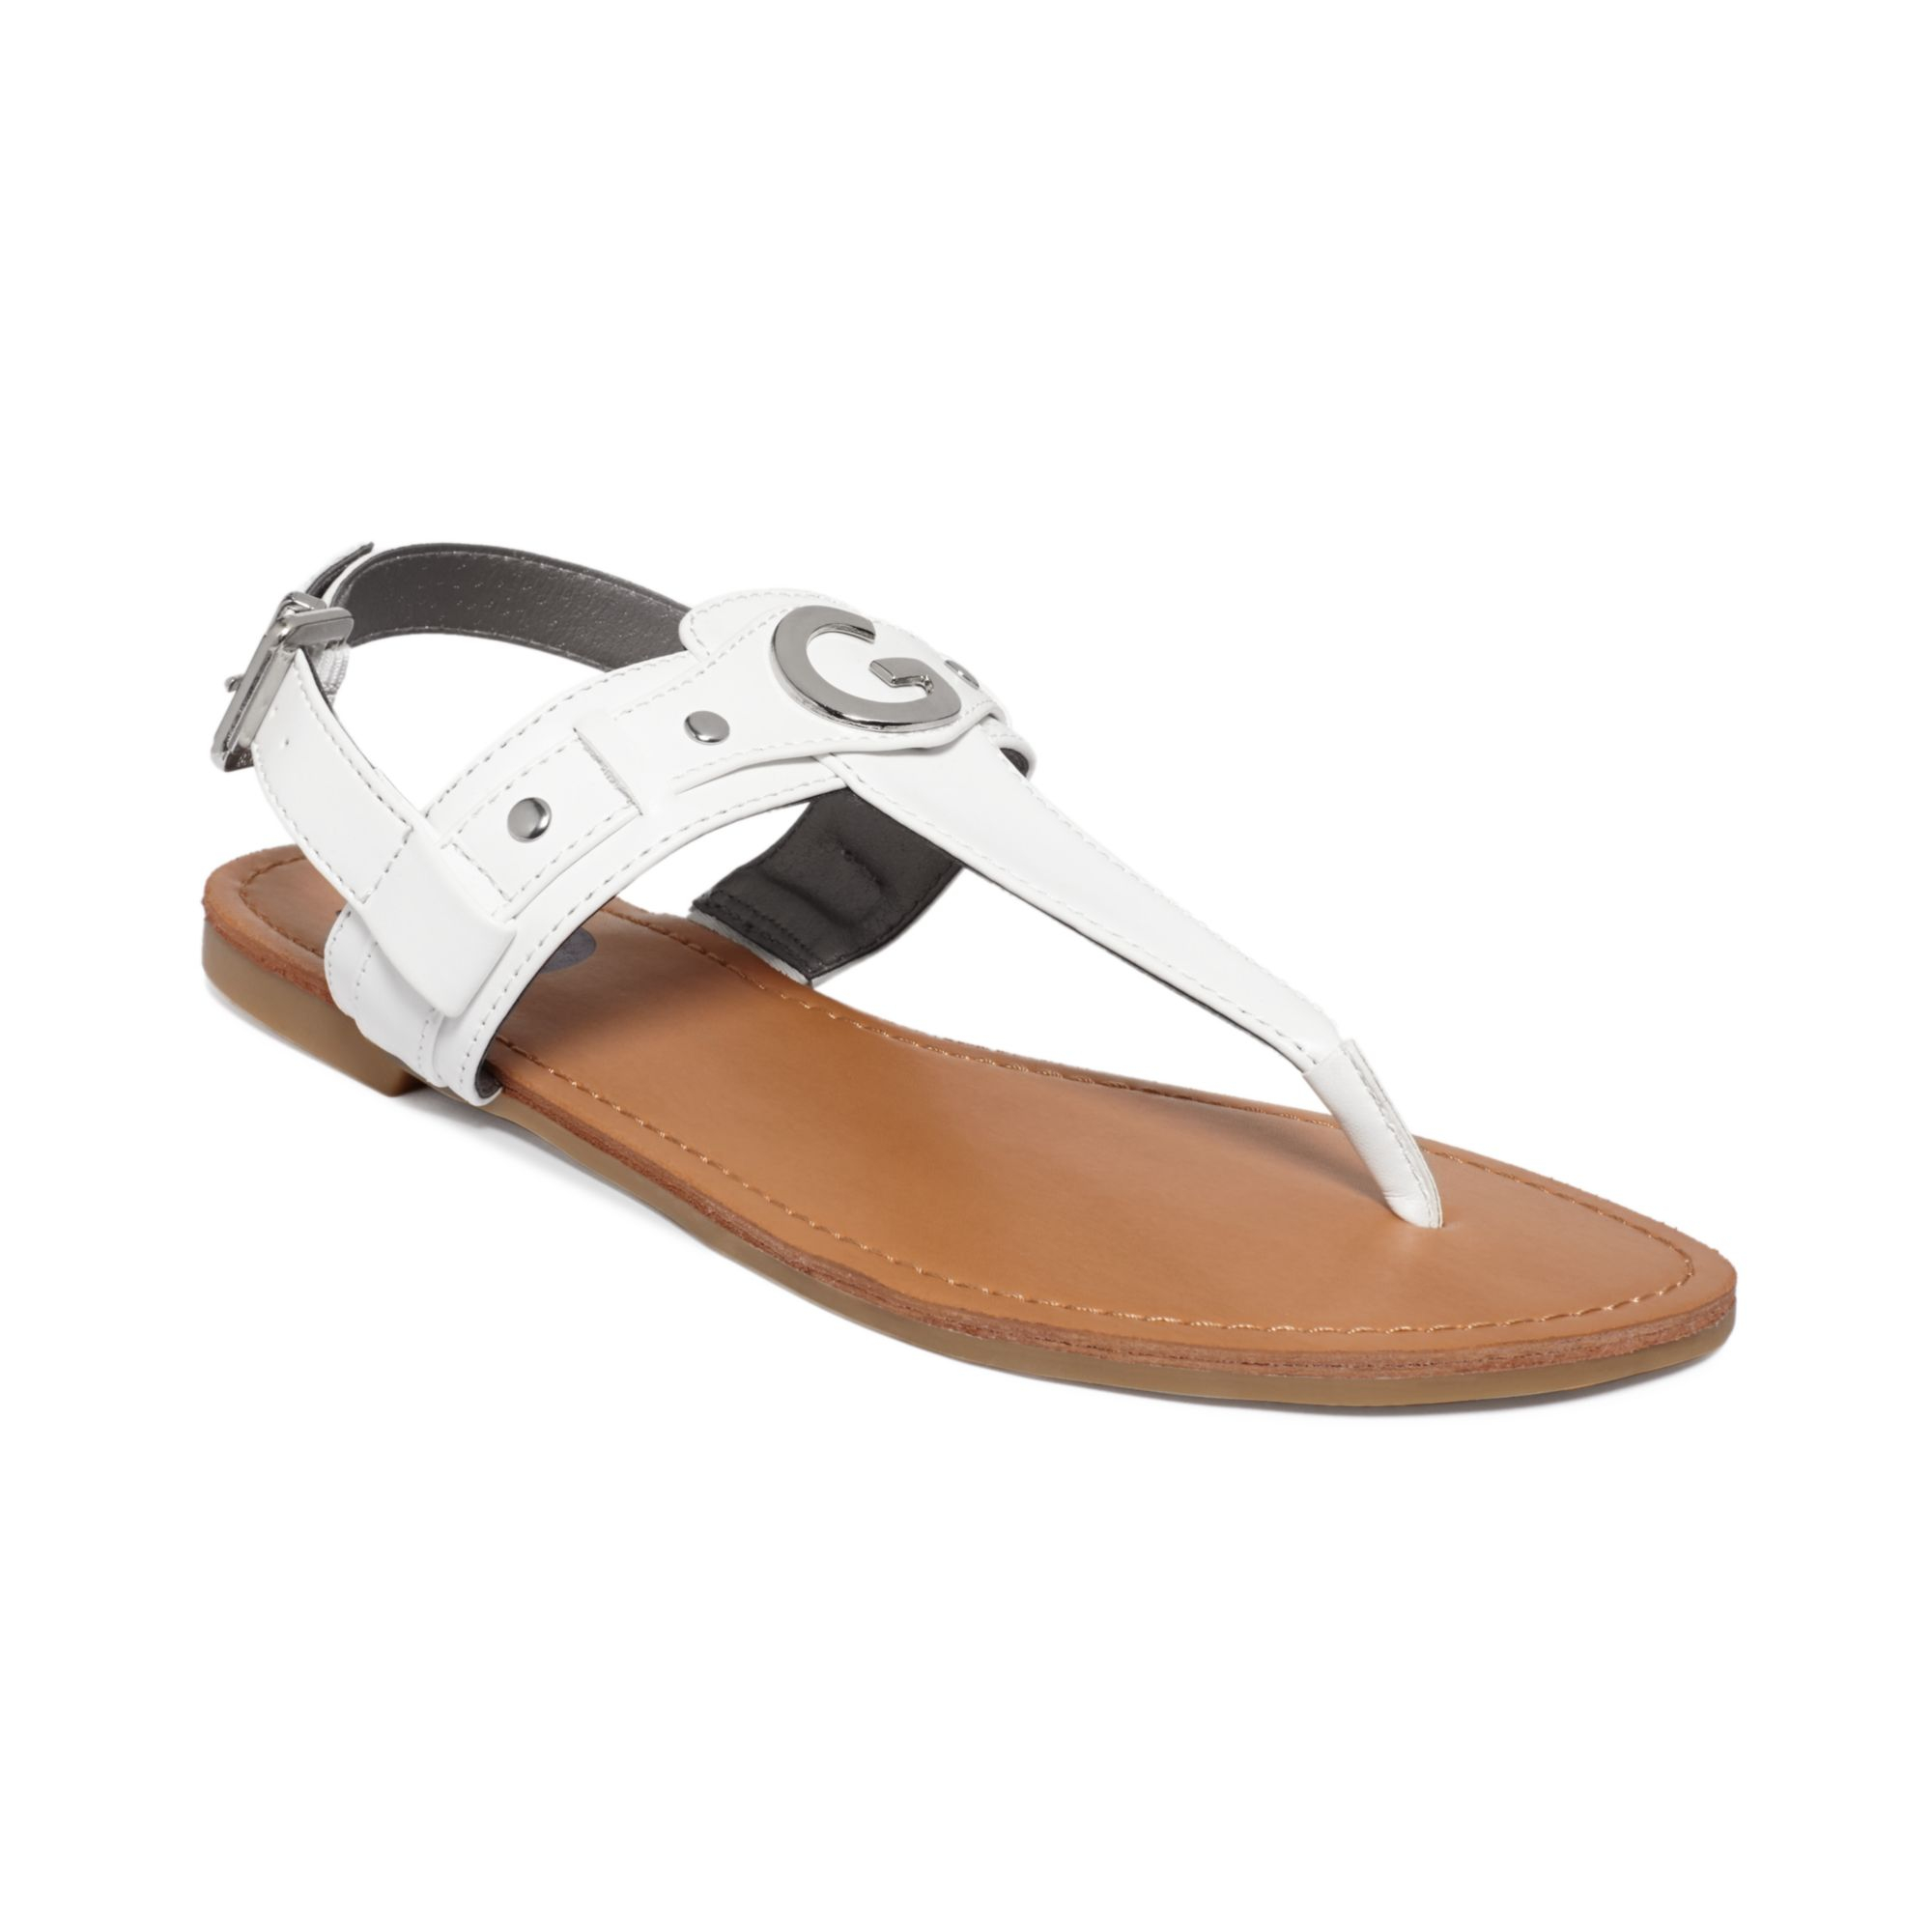 1f1da64a15f Lyst - G by Guess Womens Lundon Flat Thong Sandals in White